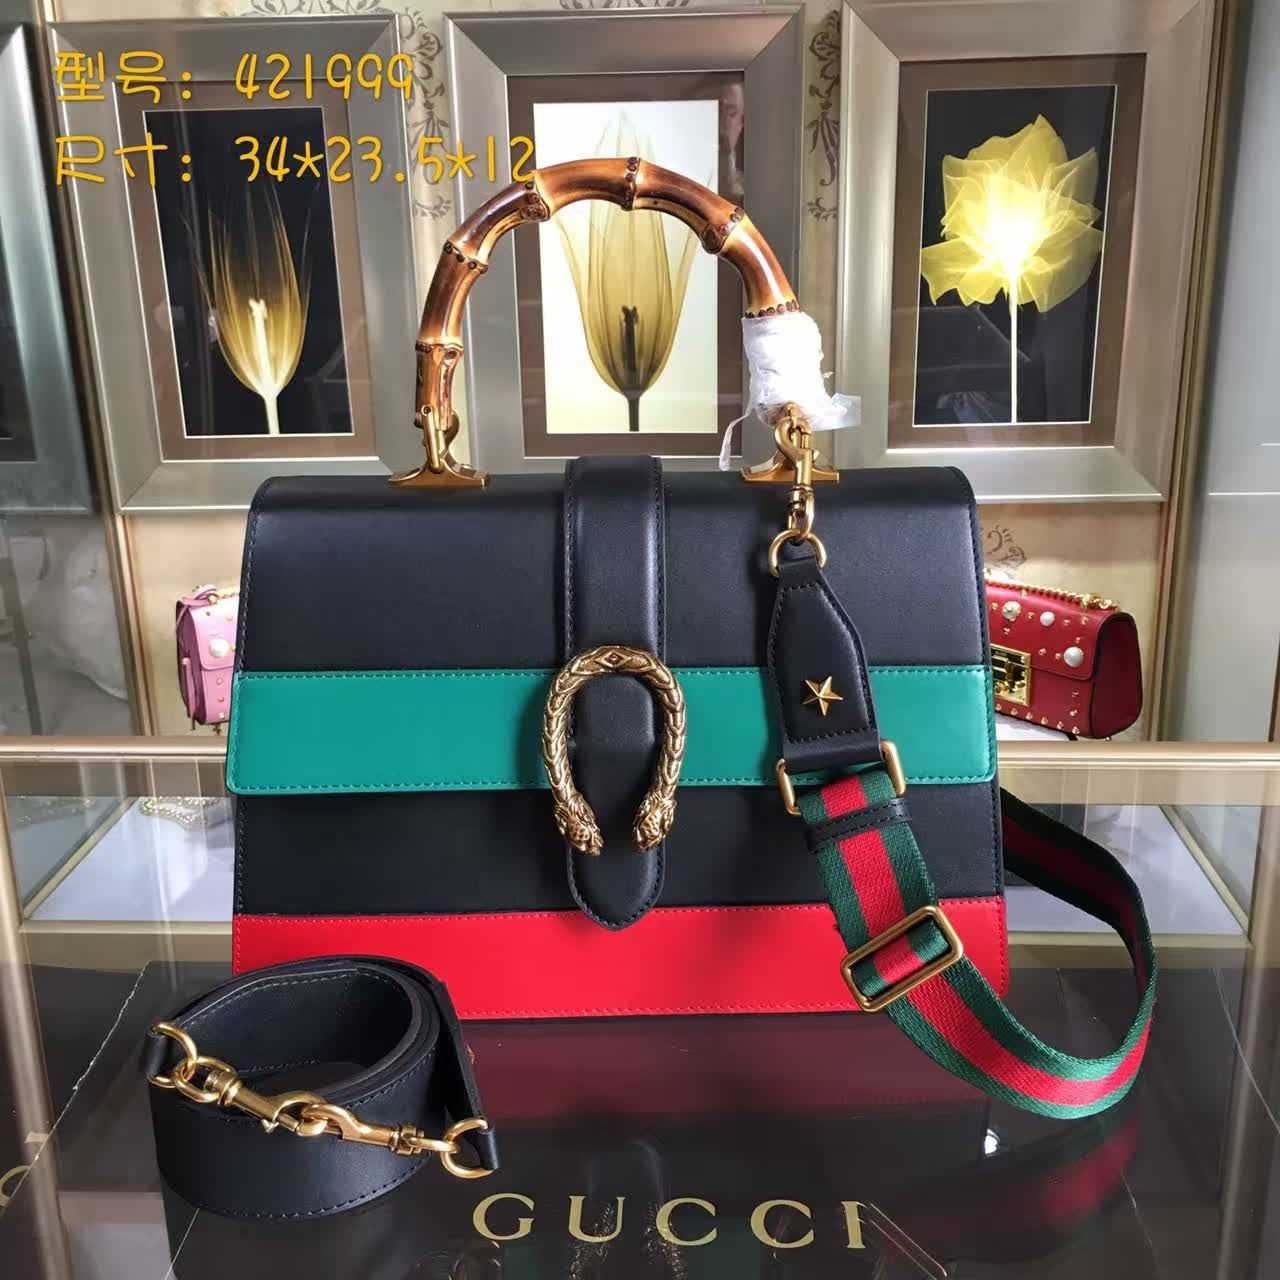 gucci Bag, ID : 55899(FORSALE:a@yybags.com), gucci designer bags online, where did gucci start, gucci store miami, gucci handbags online shopping, gucci brand name bags, buy gucci handbags online, gucci book bags on sale, gucci bags online, gucci stylish backpacks, gucci boutique, gucci pink leather handbags, gucci brasil site official #gucciBag #gucci #gucci #outdoor #backpacks